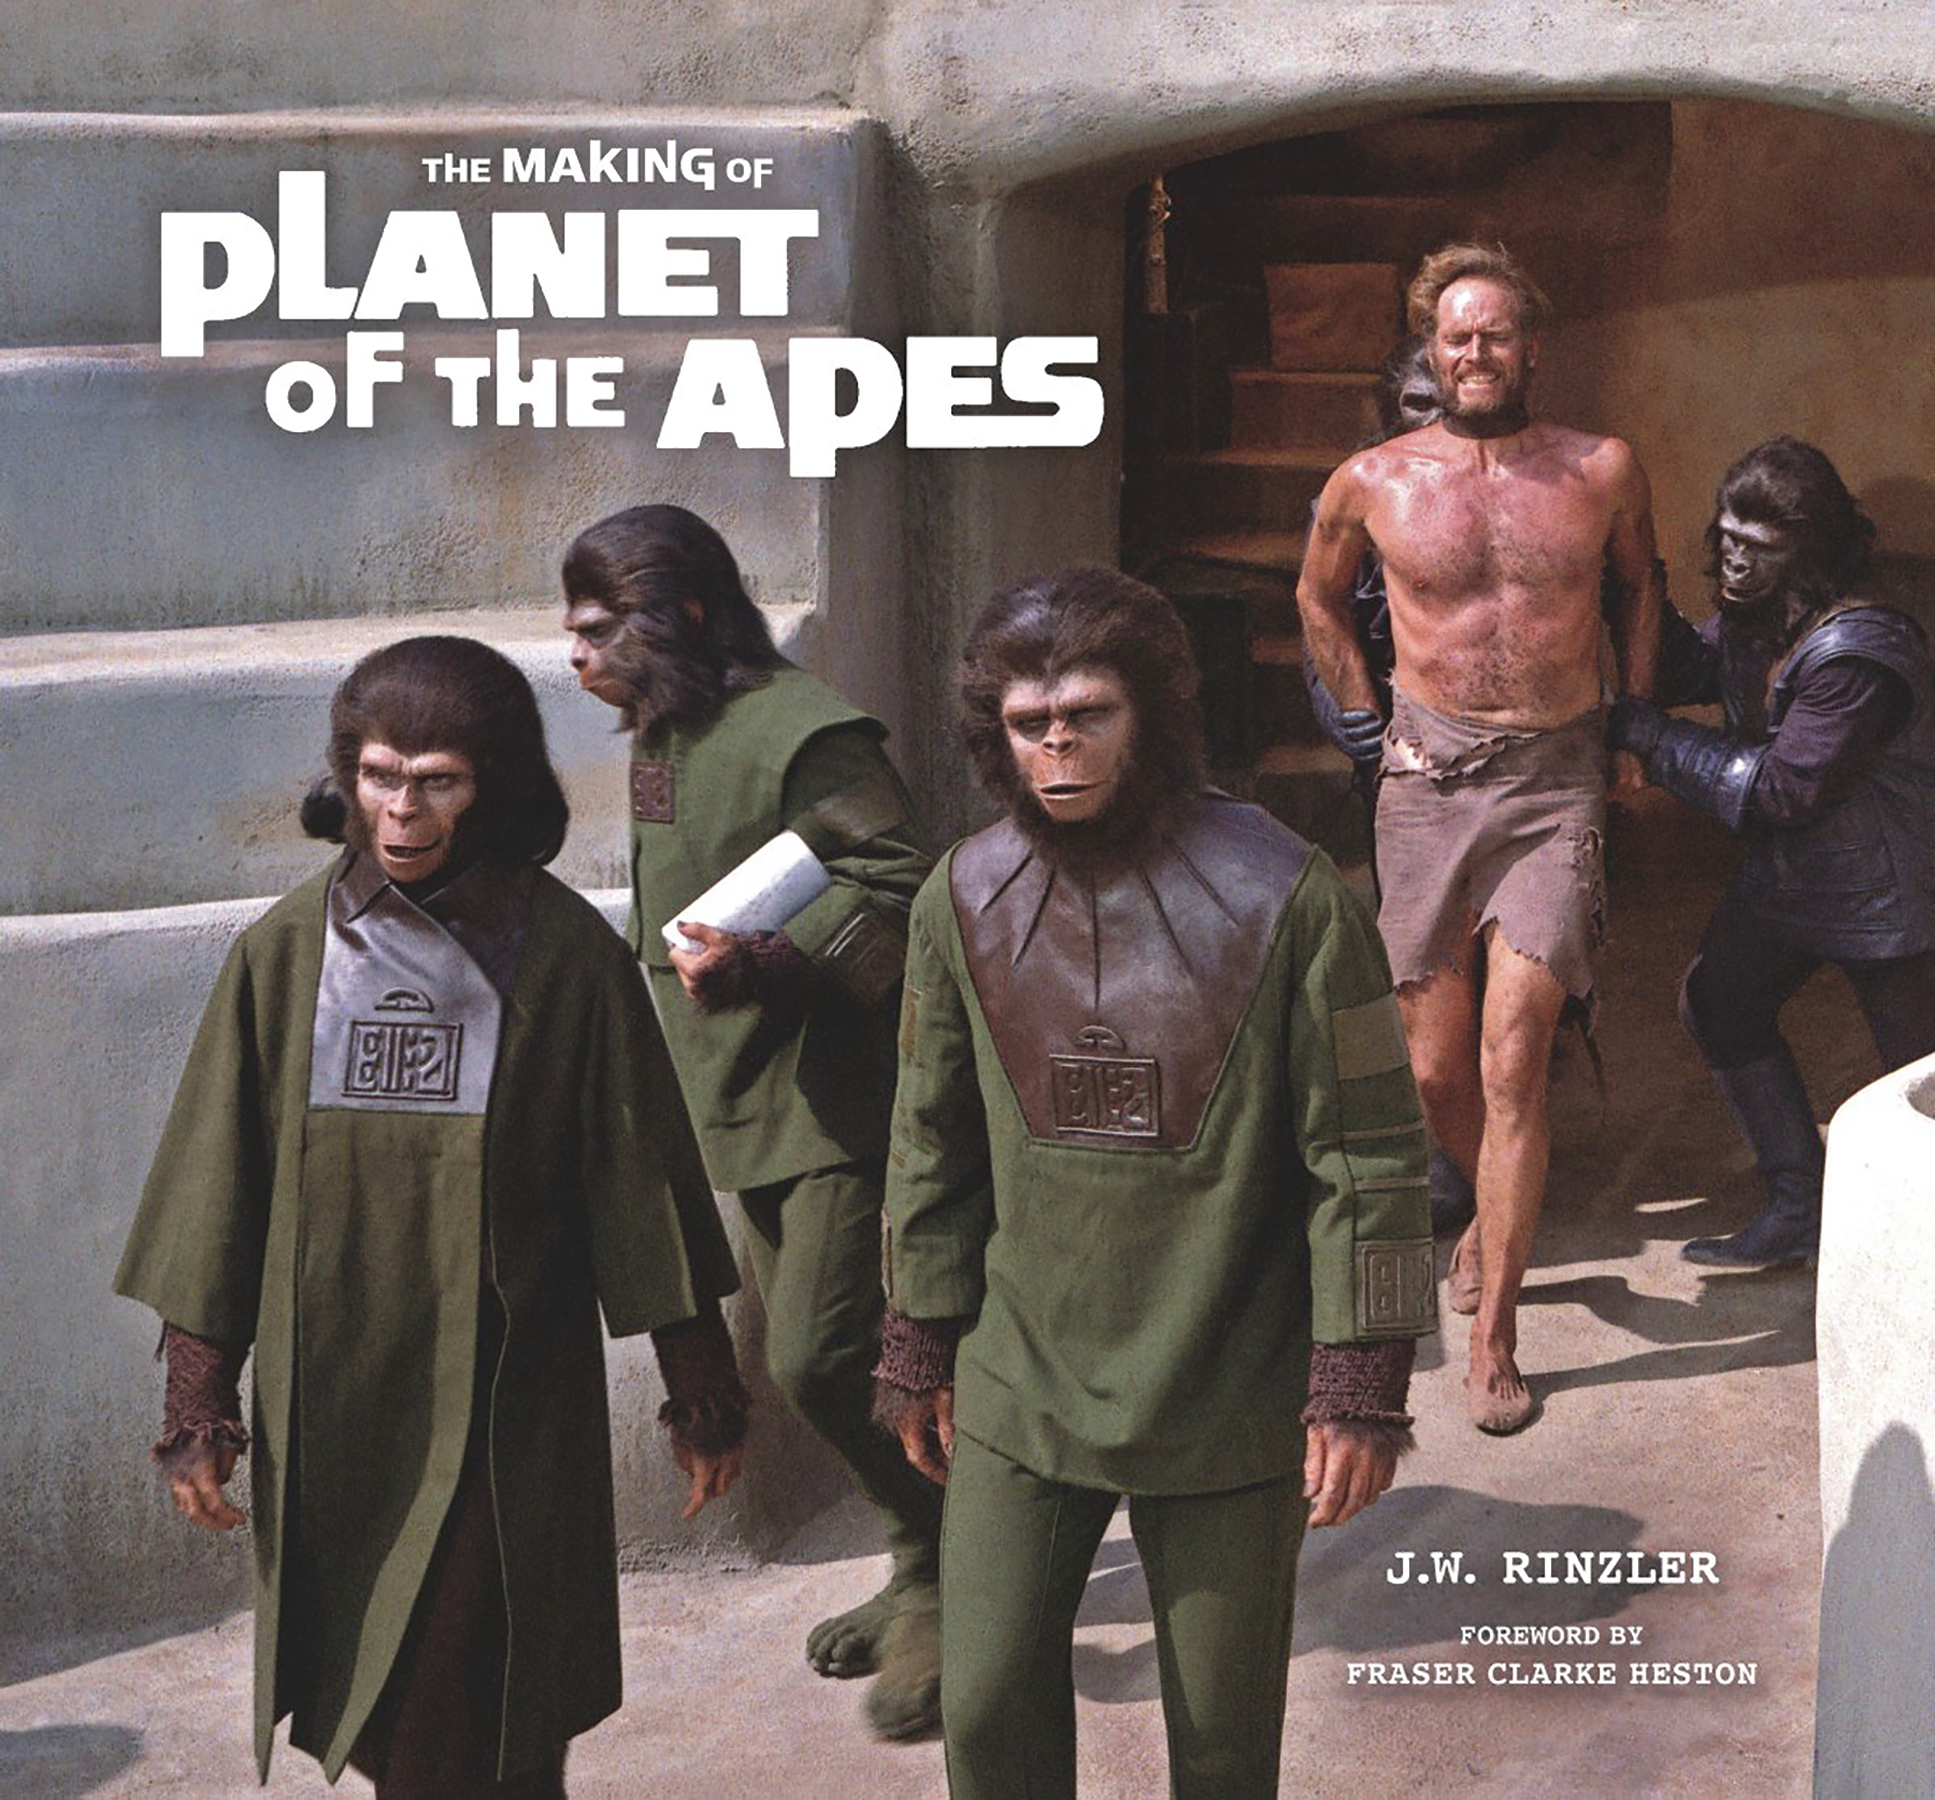 MAKING OF PLANET OF THE APES HC